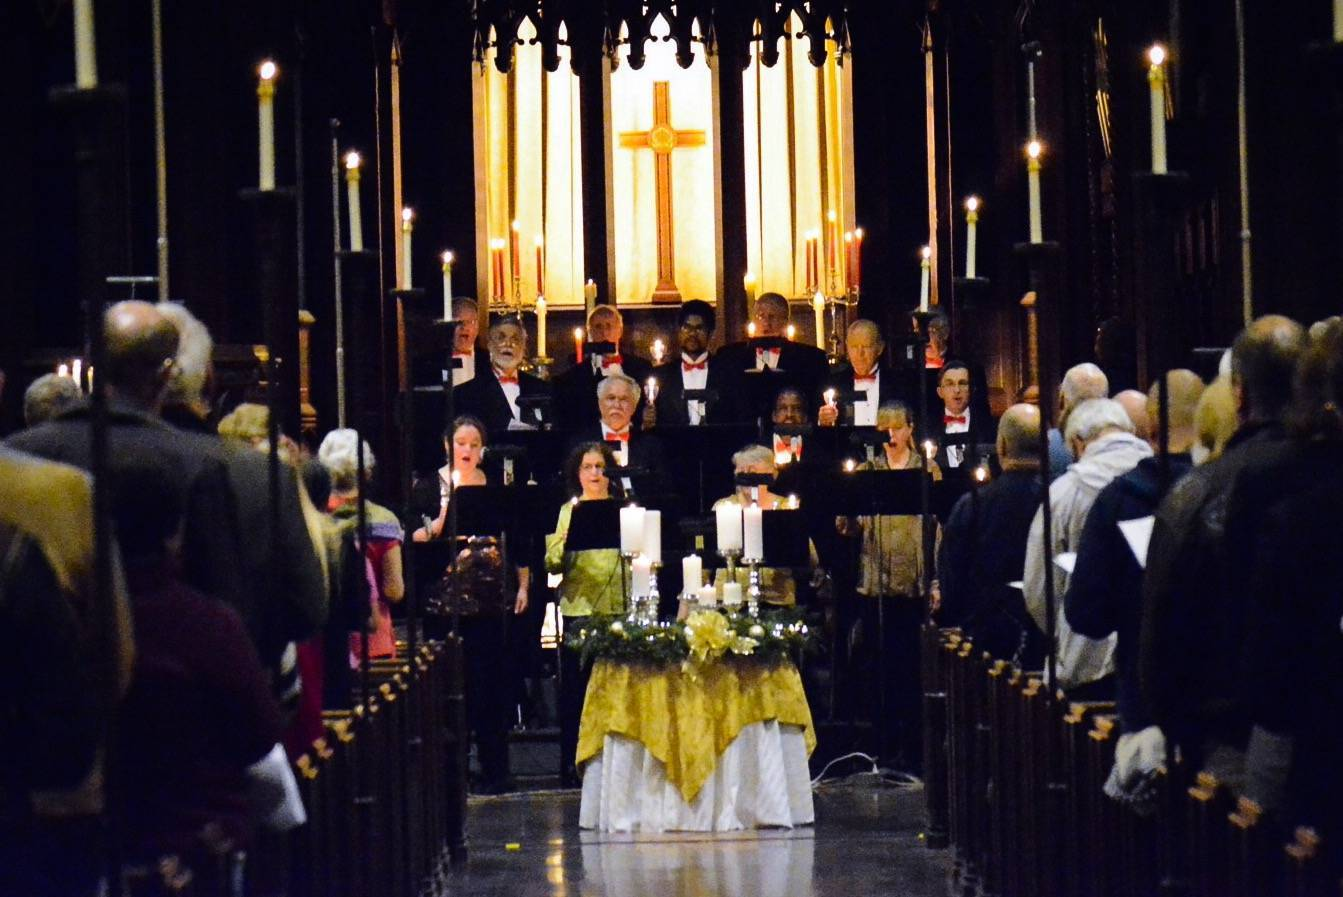 af2491a0e35b867bcac8_Photo_1_-_The_Crescent_Singers_offer_Yuletide_to_celebrate_the_holiday_season.JPG